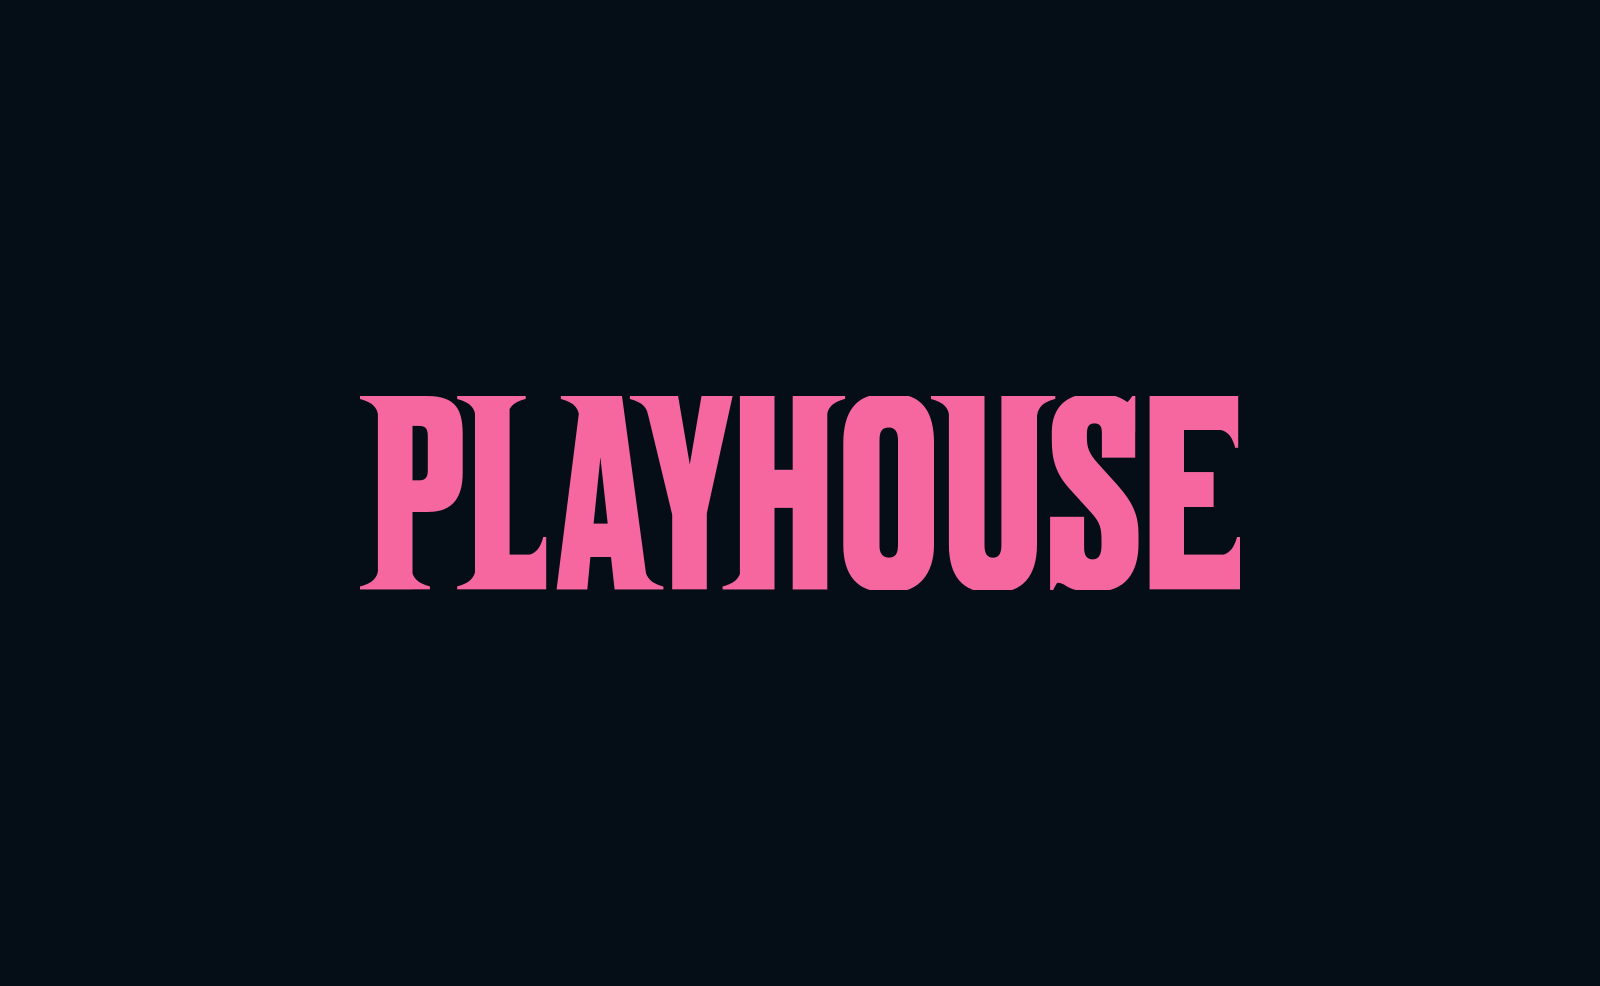 Playhouse Tattoo Studio